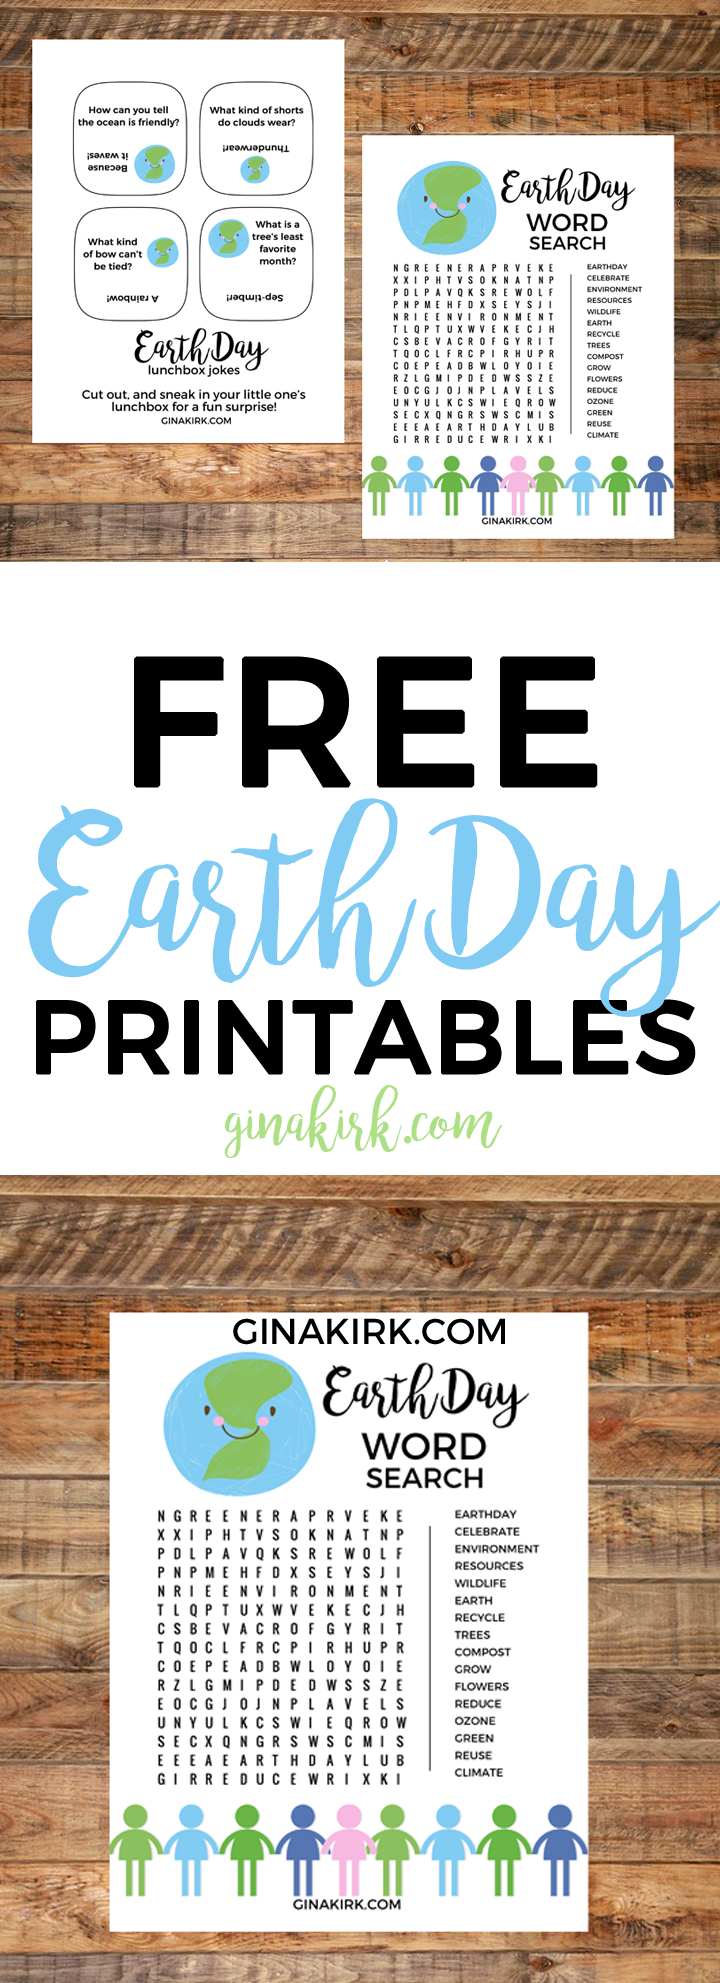 Free Earth Day printables | Earth Day lunchbox jokes | Earth Day word search | Earth day ideas for kids | GinaKirk.com @ginaekirk